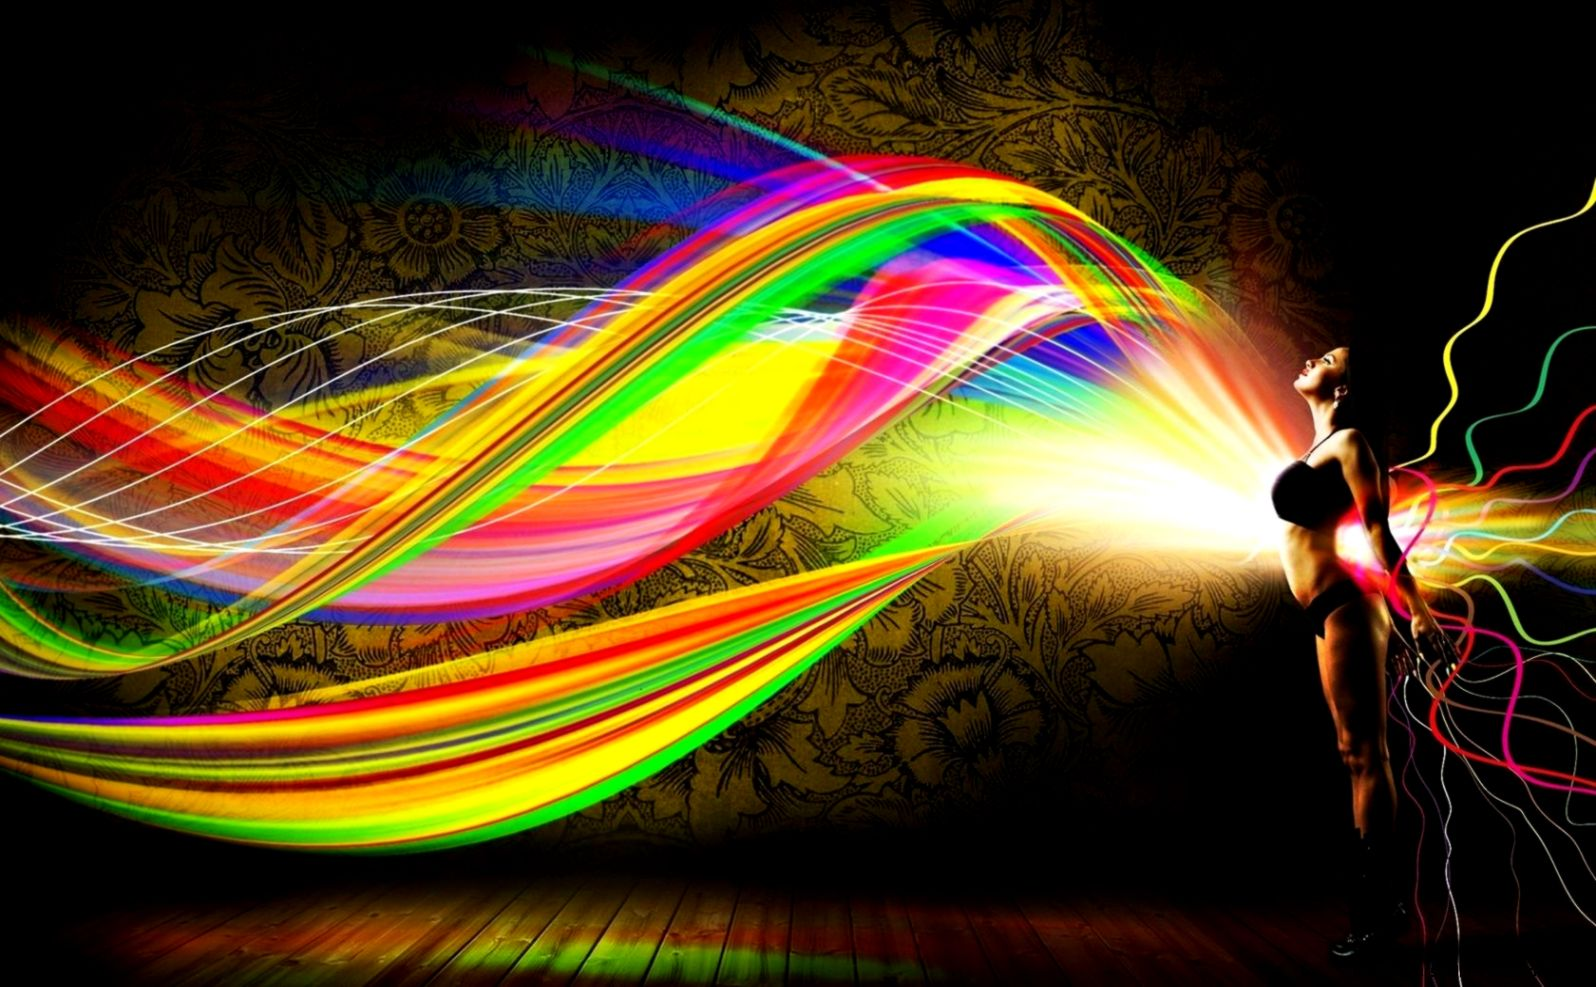 Hd Wallpaper Abstract Bright Wallpapers Gallery X